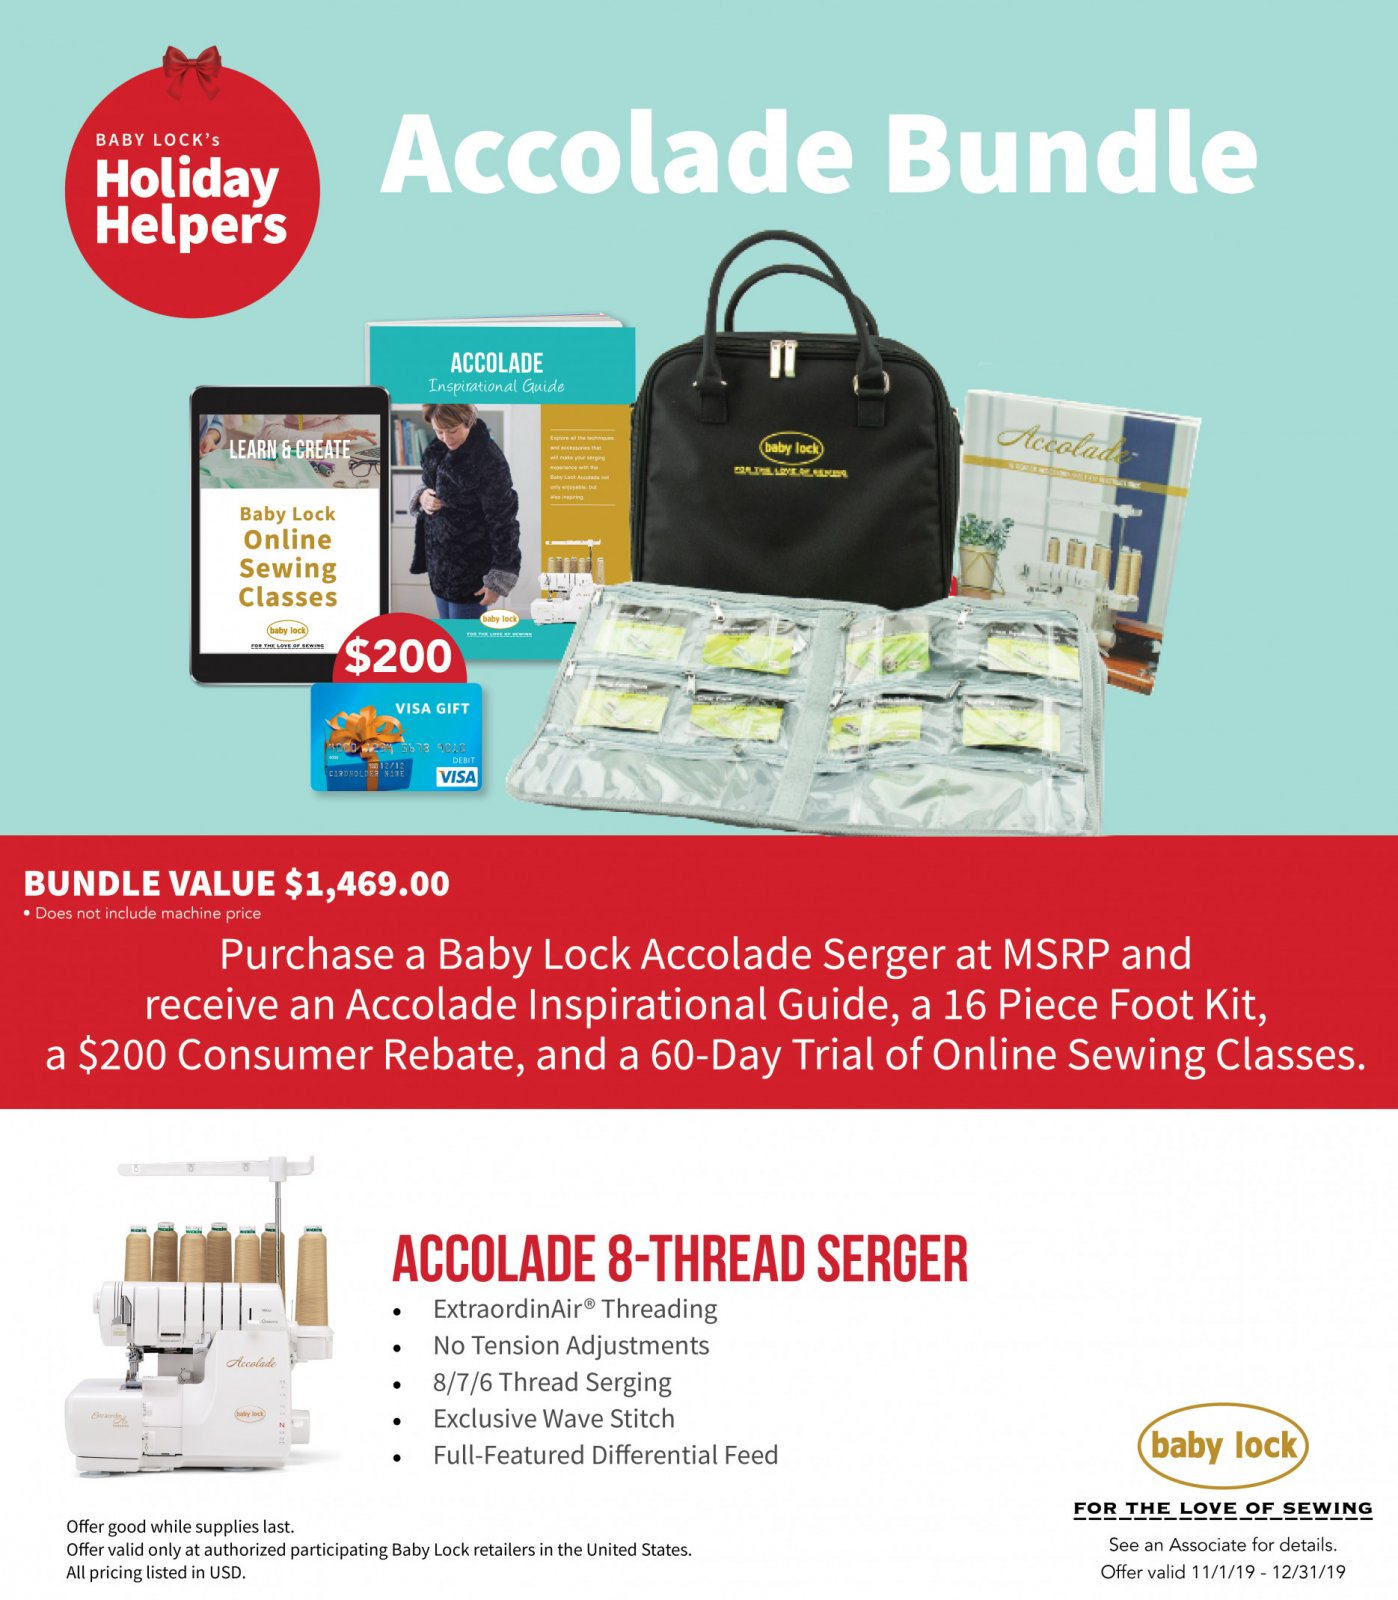 Accolade Promo Deal